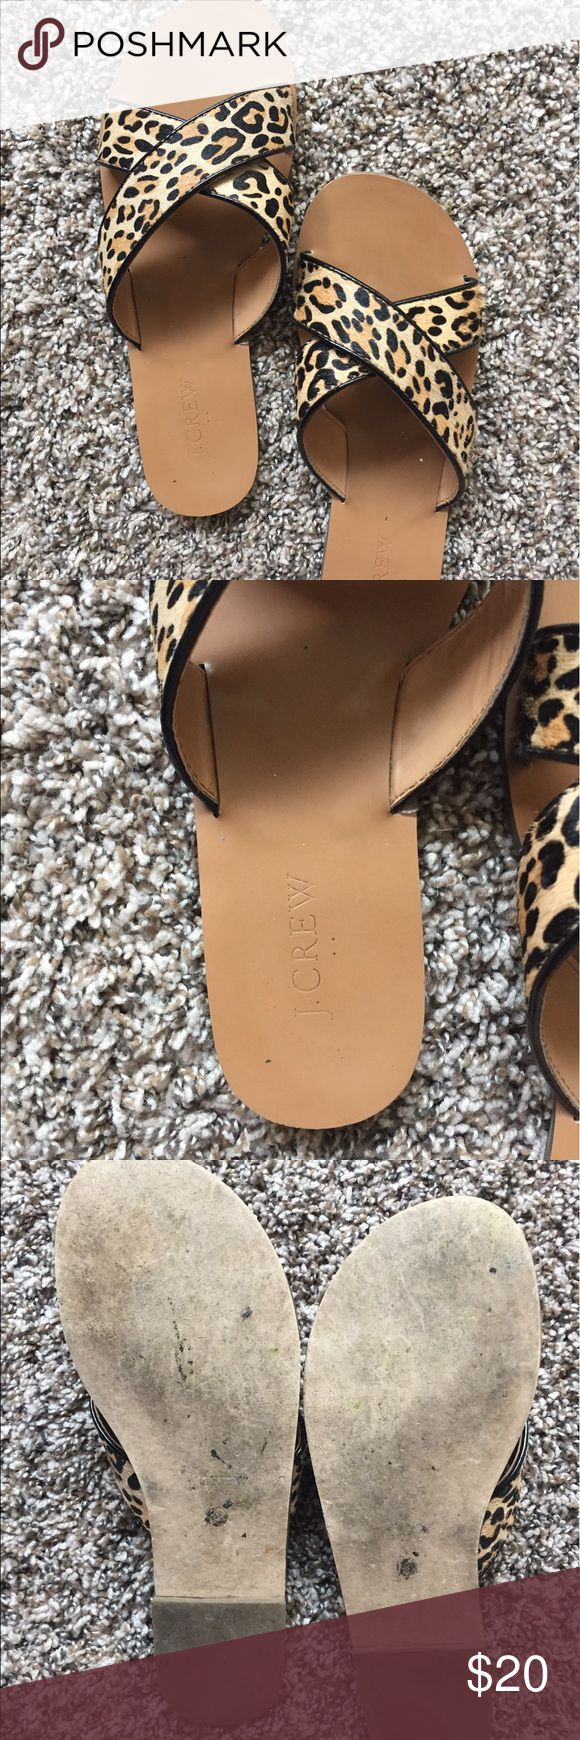 J. Crew leopard print slide sandals 8 The most adorable leopard print slides, size 8. Slight wear on the right heel, see photo, but exterior heels and back in good shape. Very comfy. Dress up or down. Summer spring or fall! J. Crew Shoes Sandals